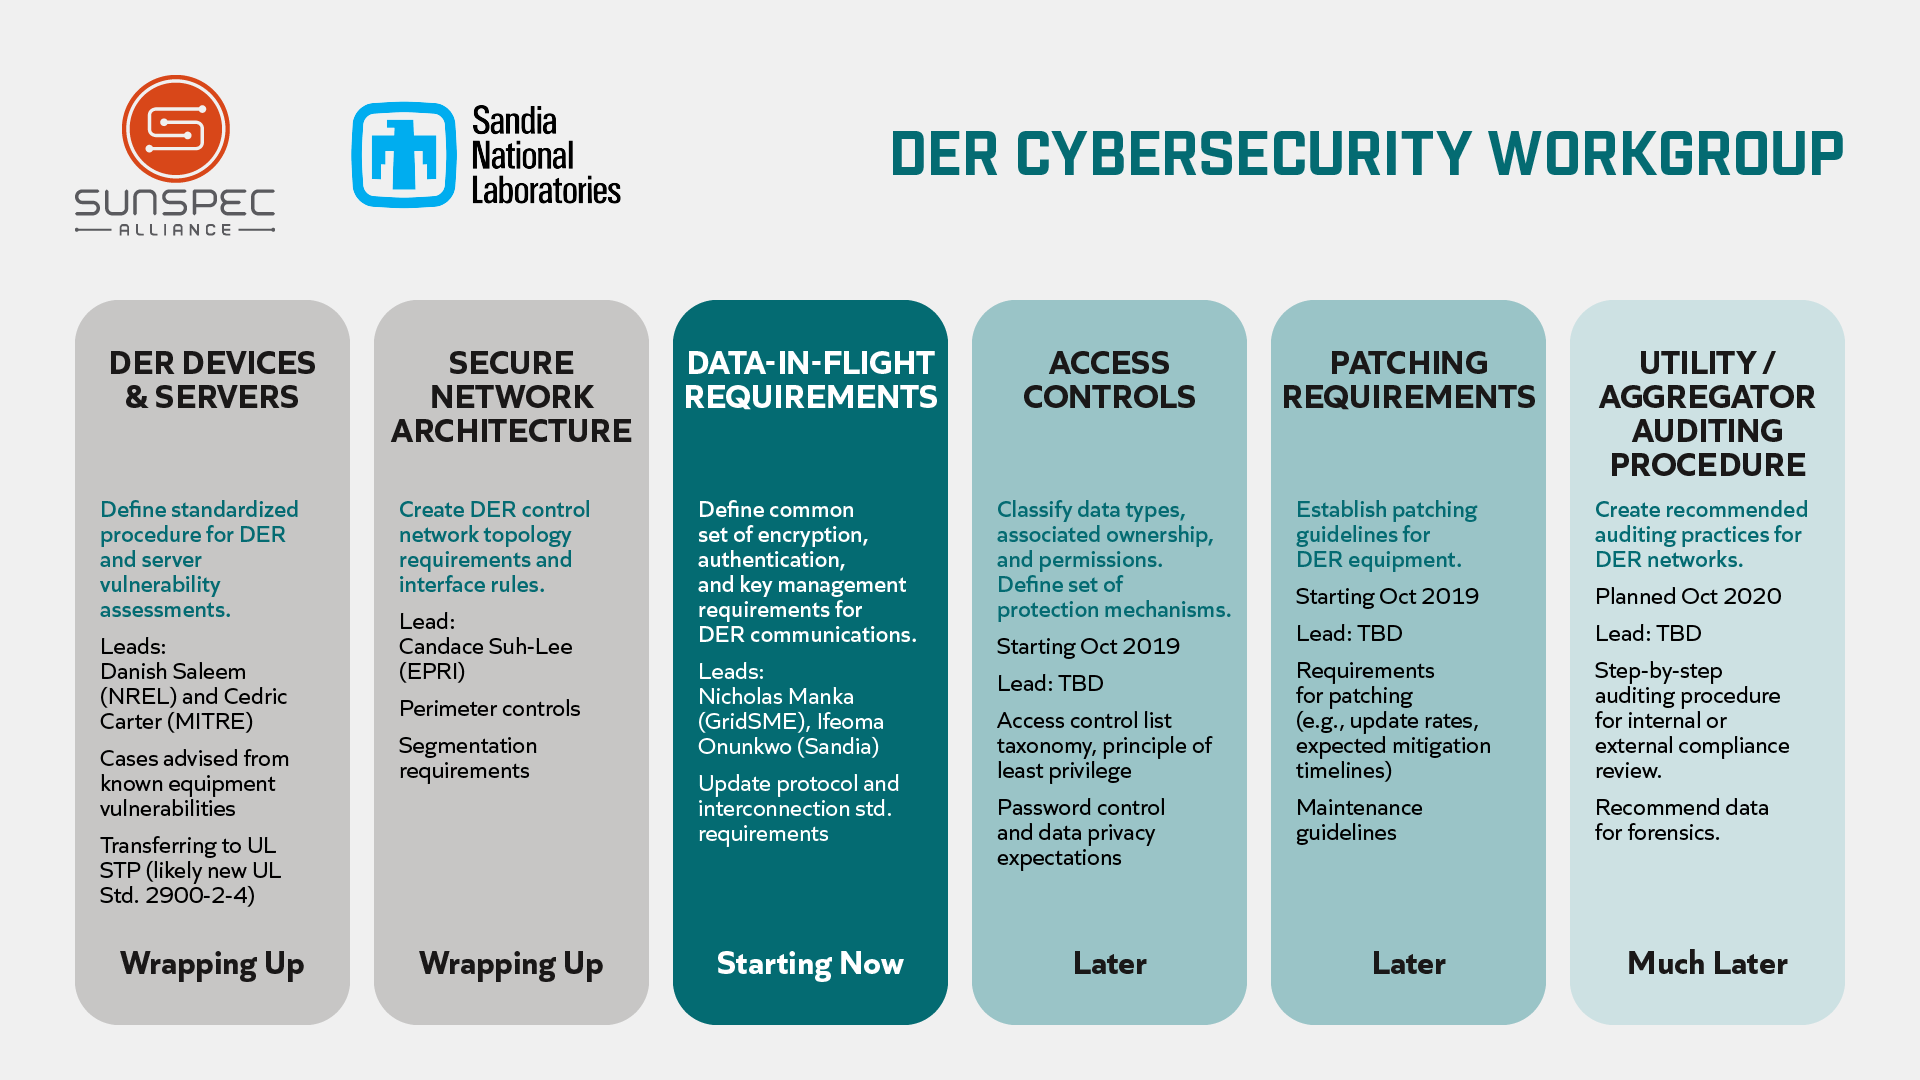 Cybersecurity workgroups timeline image